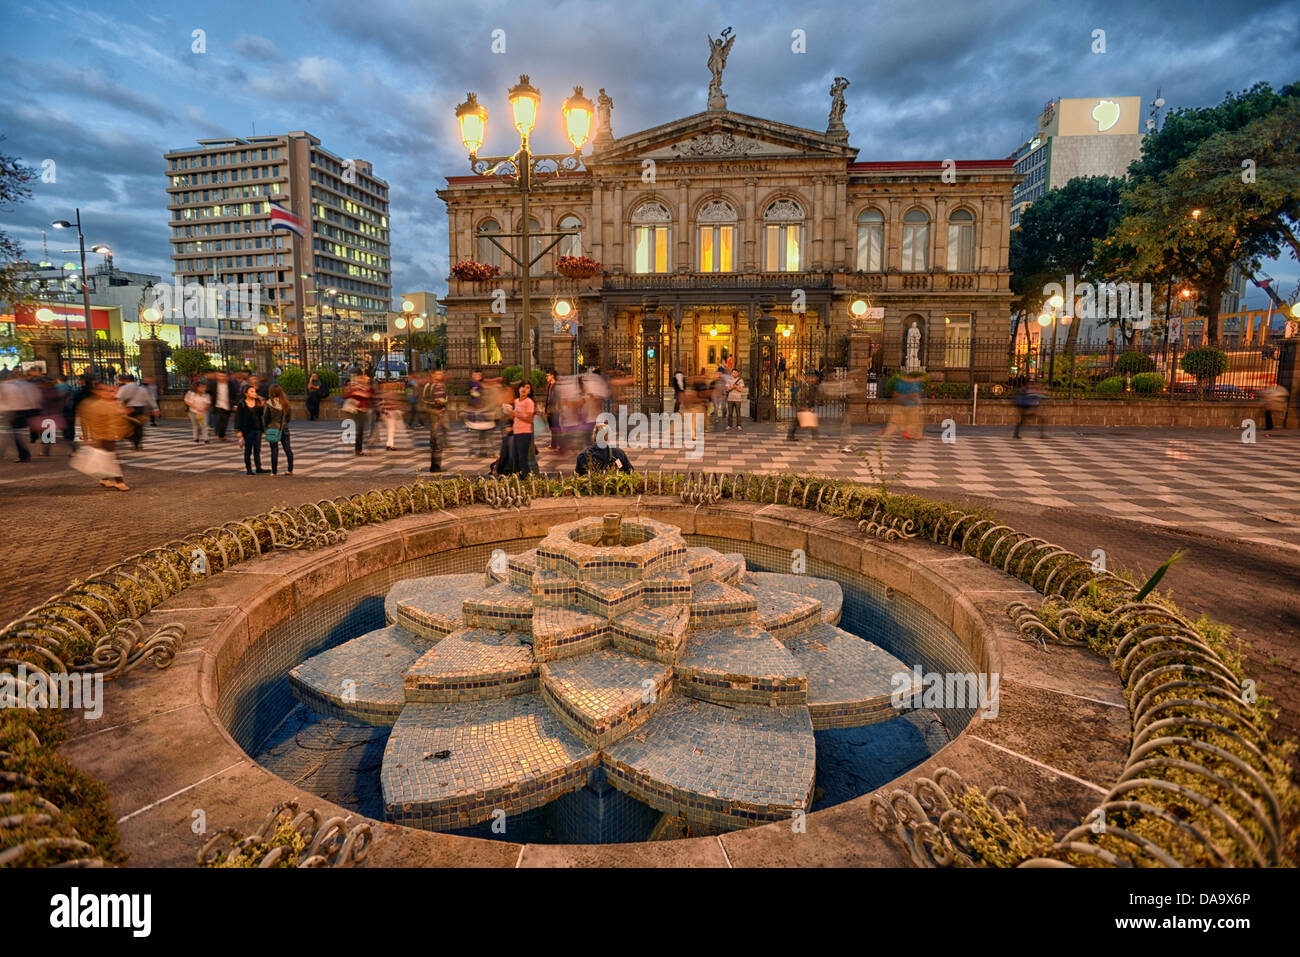 Central America, Costa Rica, San Jose, Centro, City, Center, Teatro,  Theatre, Building, Architecture, Neo Classical, San Jose